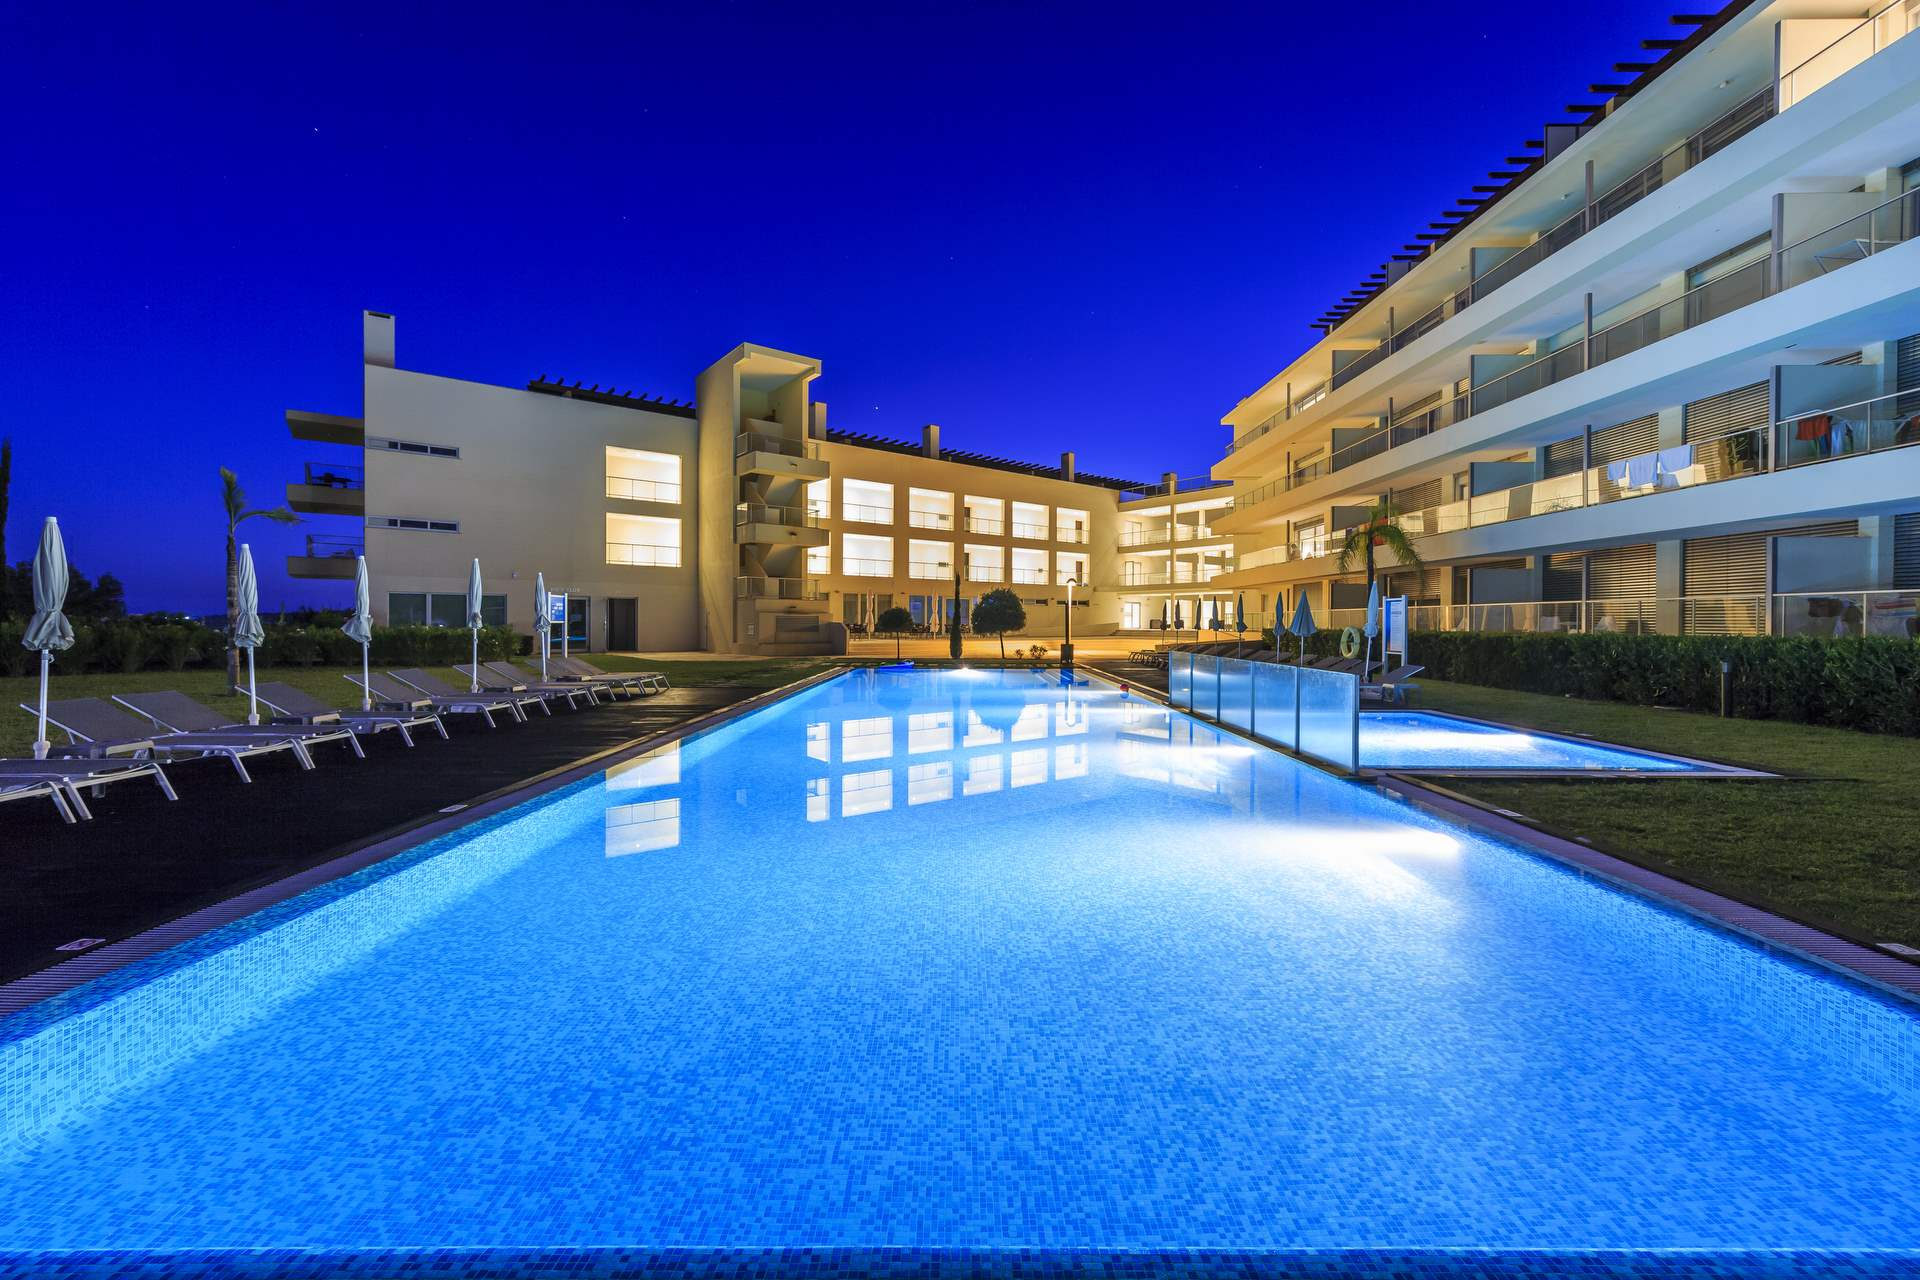 Laguna Resort, Two Bedroom Apartment, 2 bedroom resort in Vilamoura Area, Algarve Photo #19